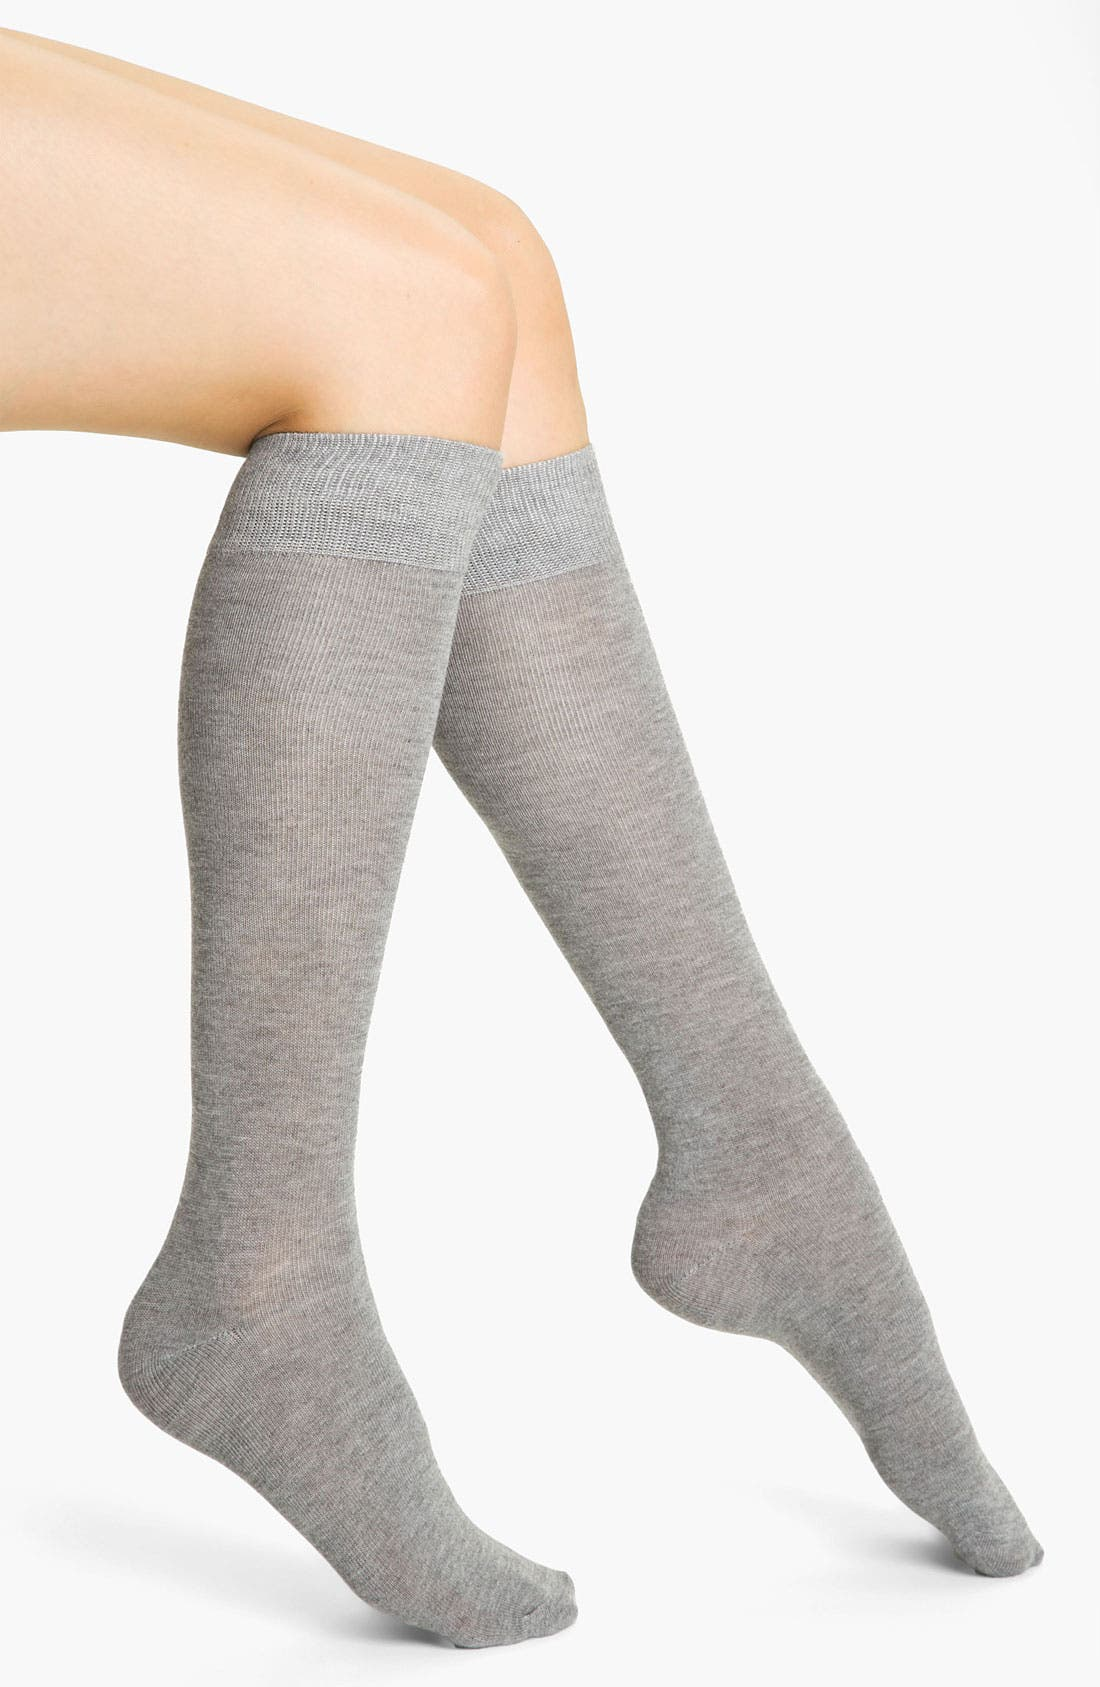 Main Image - Nordstrom Heathered Knee High Socks (3 for $18)